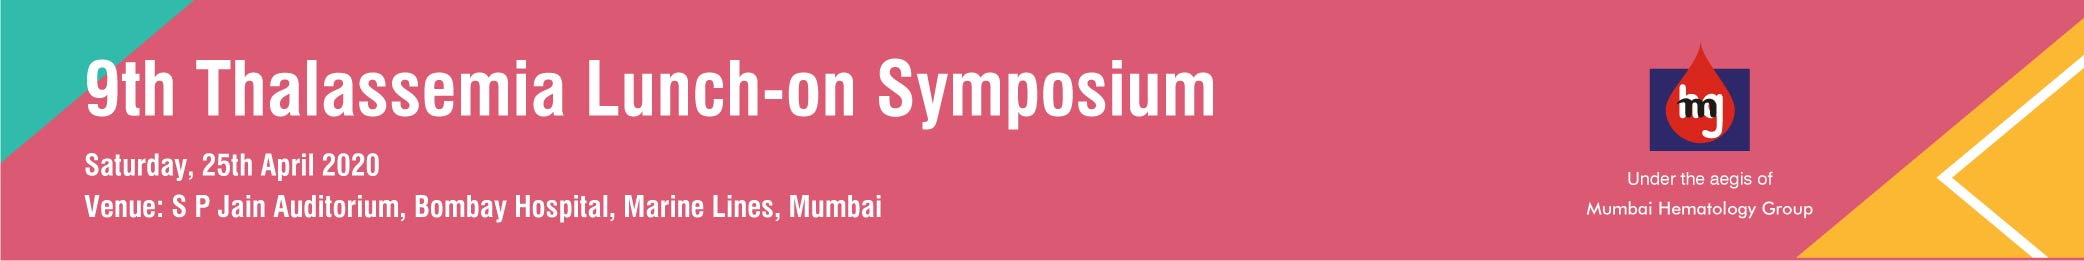 9th Thalassemia Lunch-on Symposium